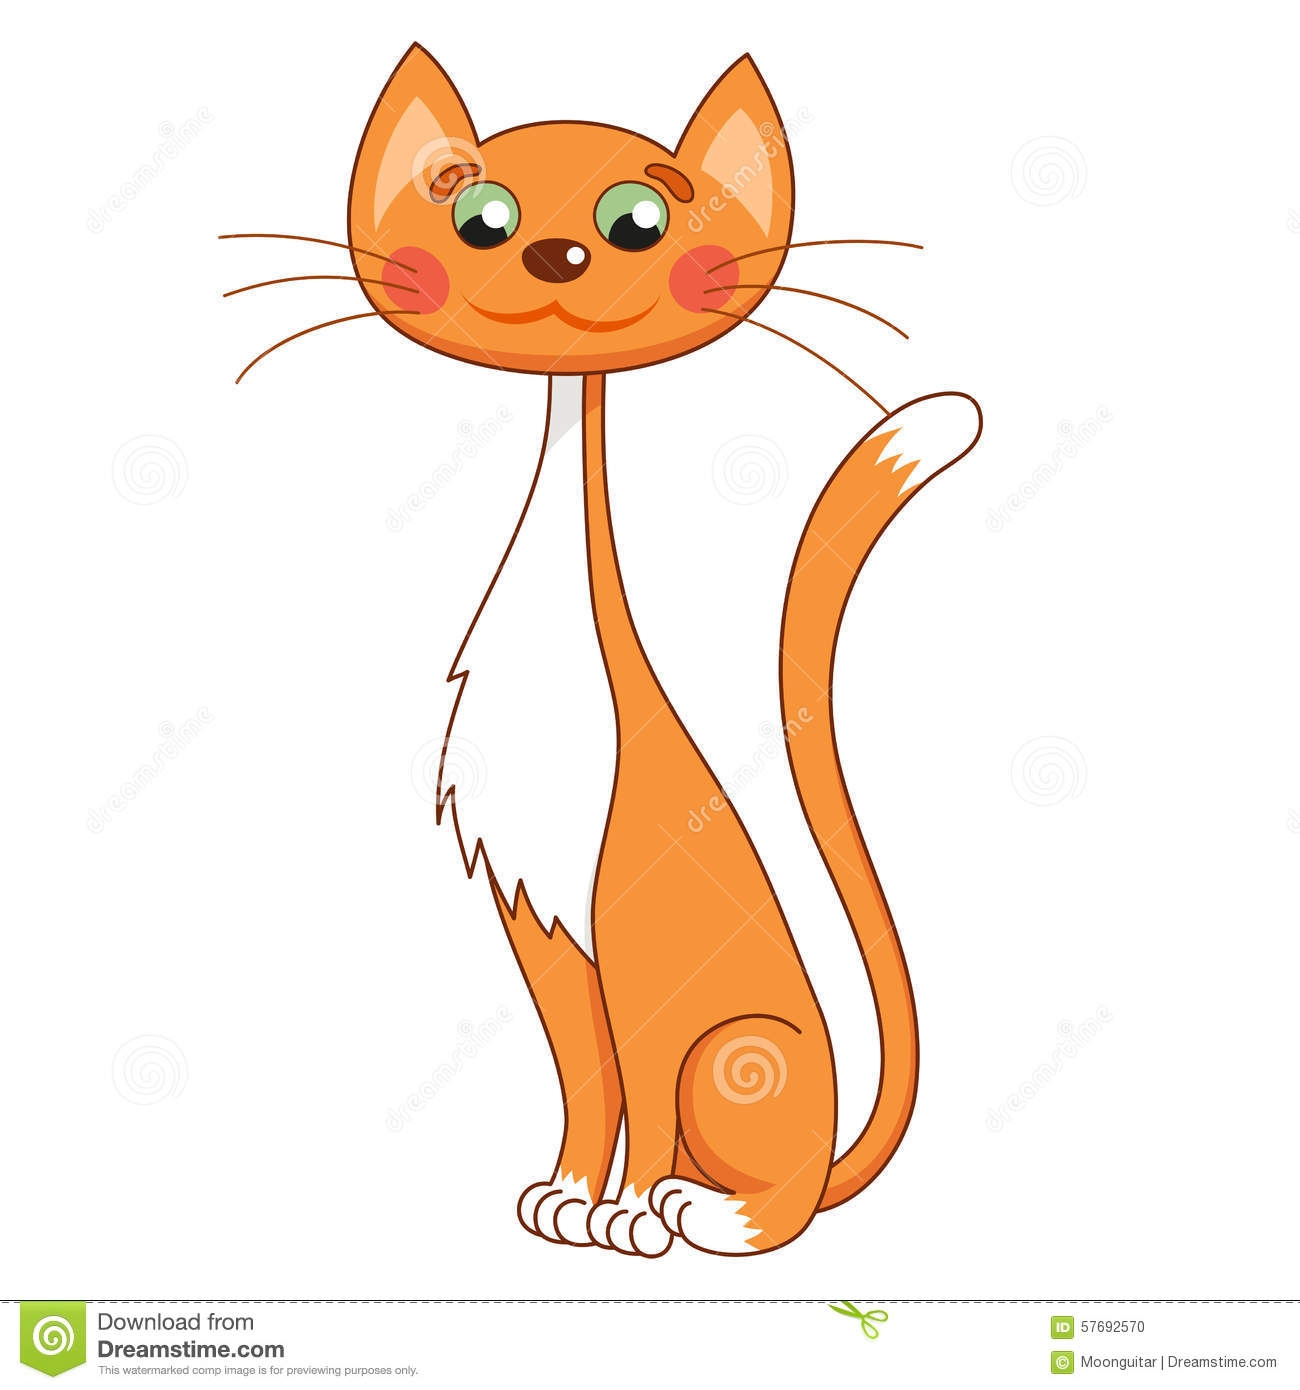 Thin cat clipart jpg library library Thin cat clipart - ClipartFest jpg library library